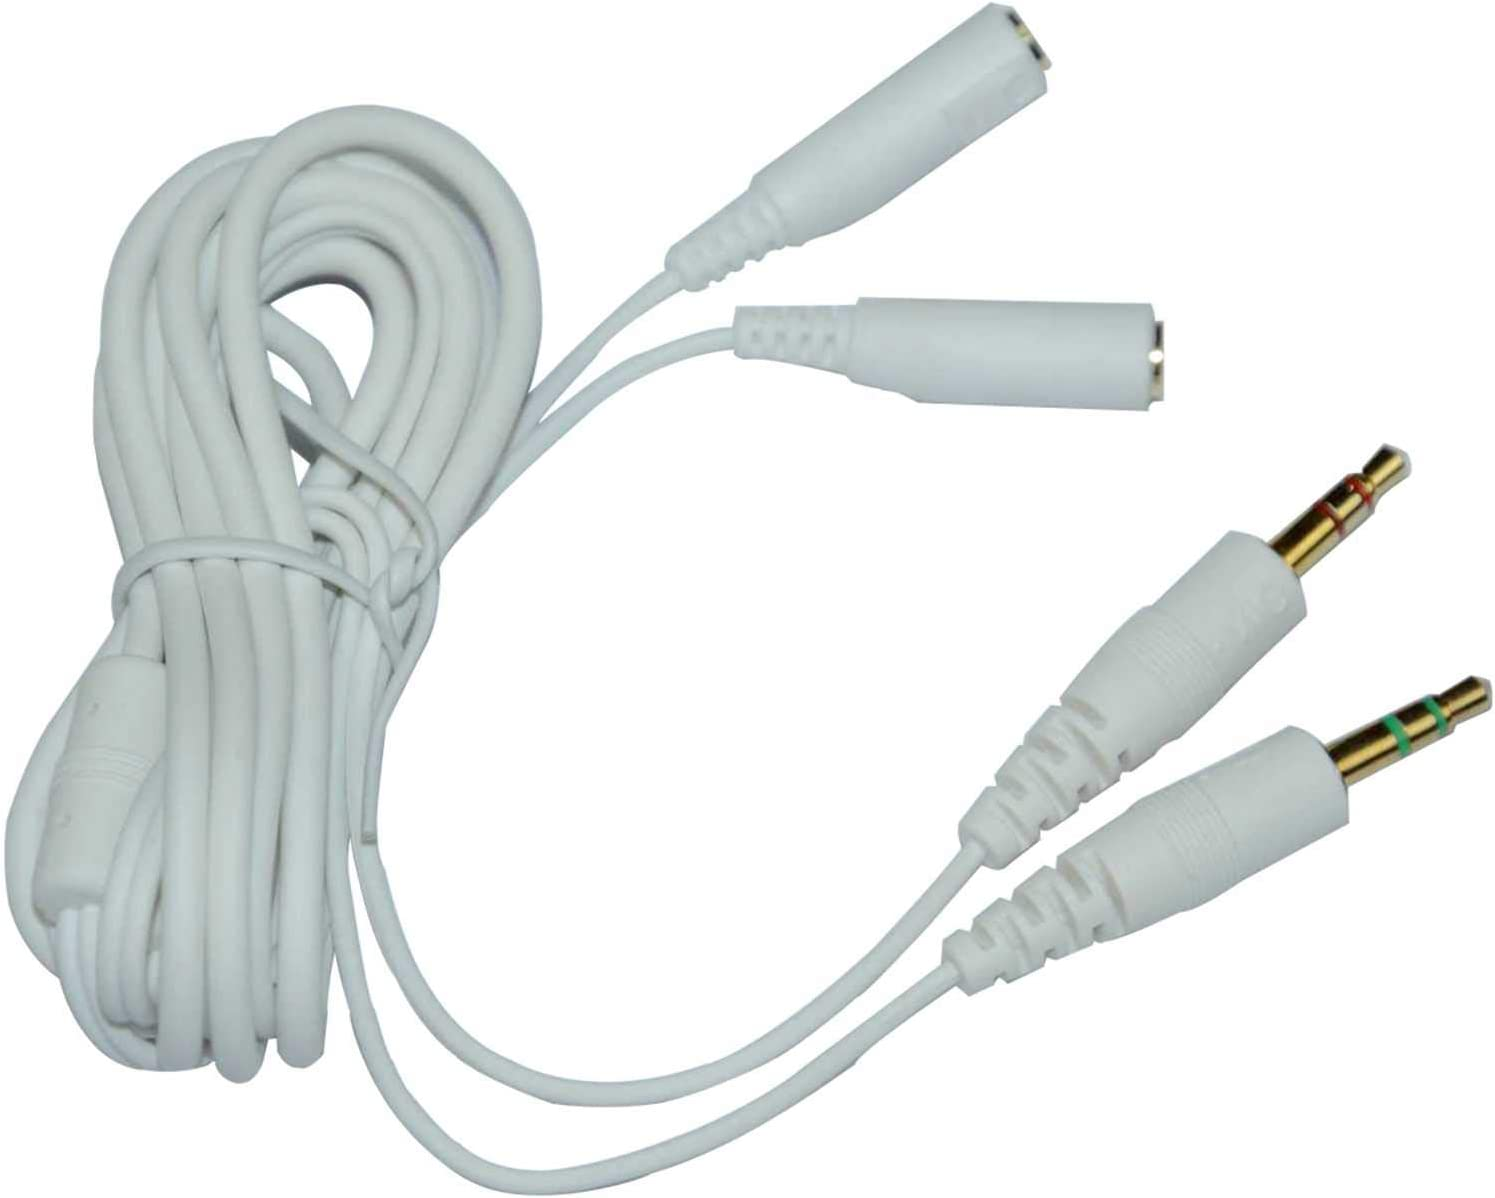 3.5mm Extension Cable Headset Cord